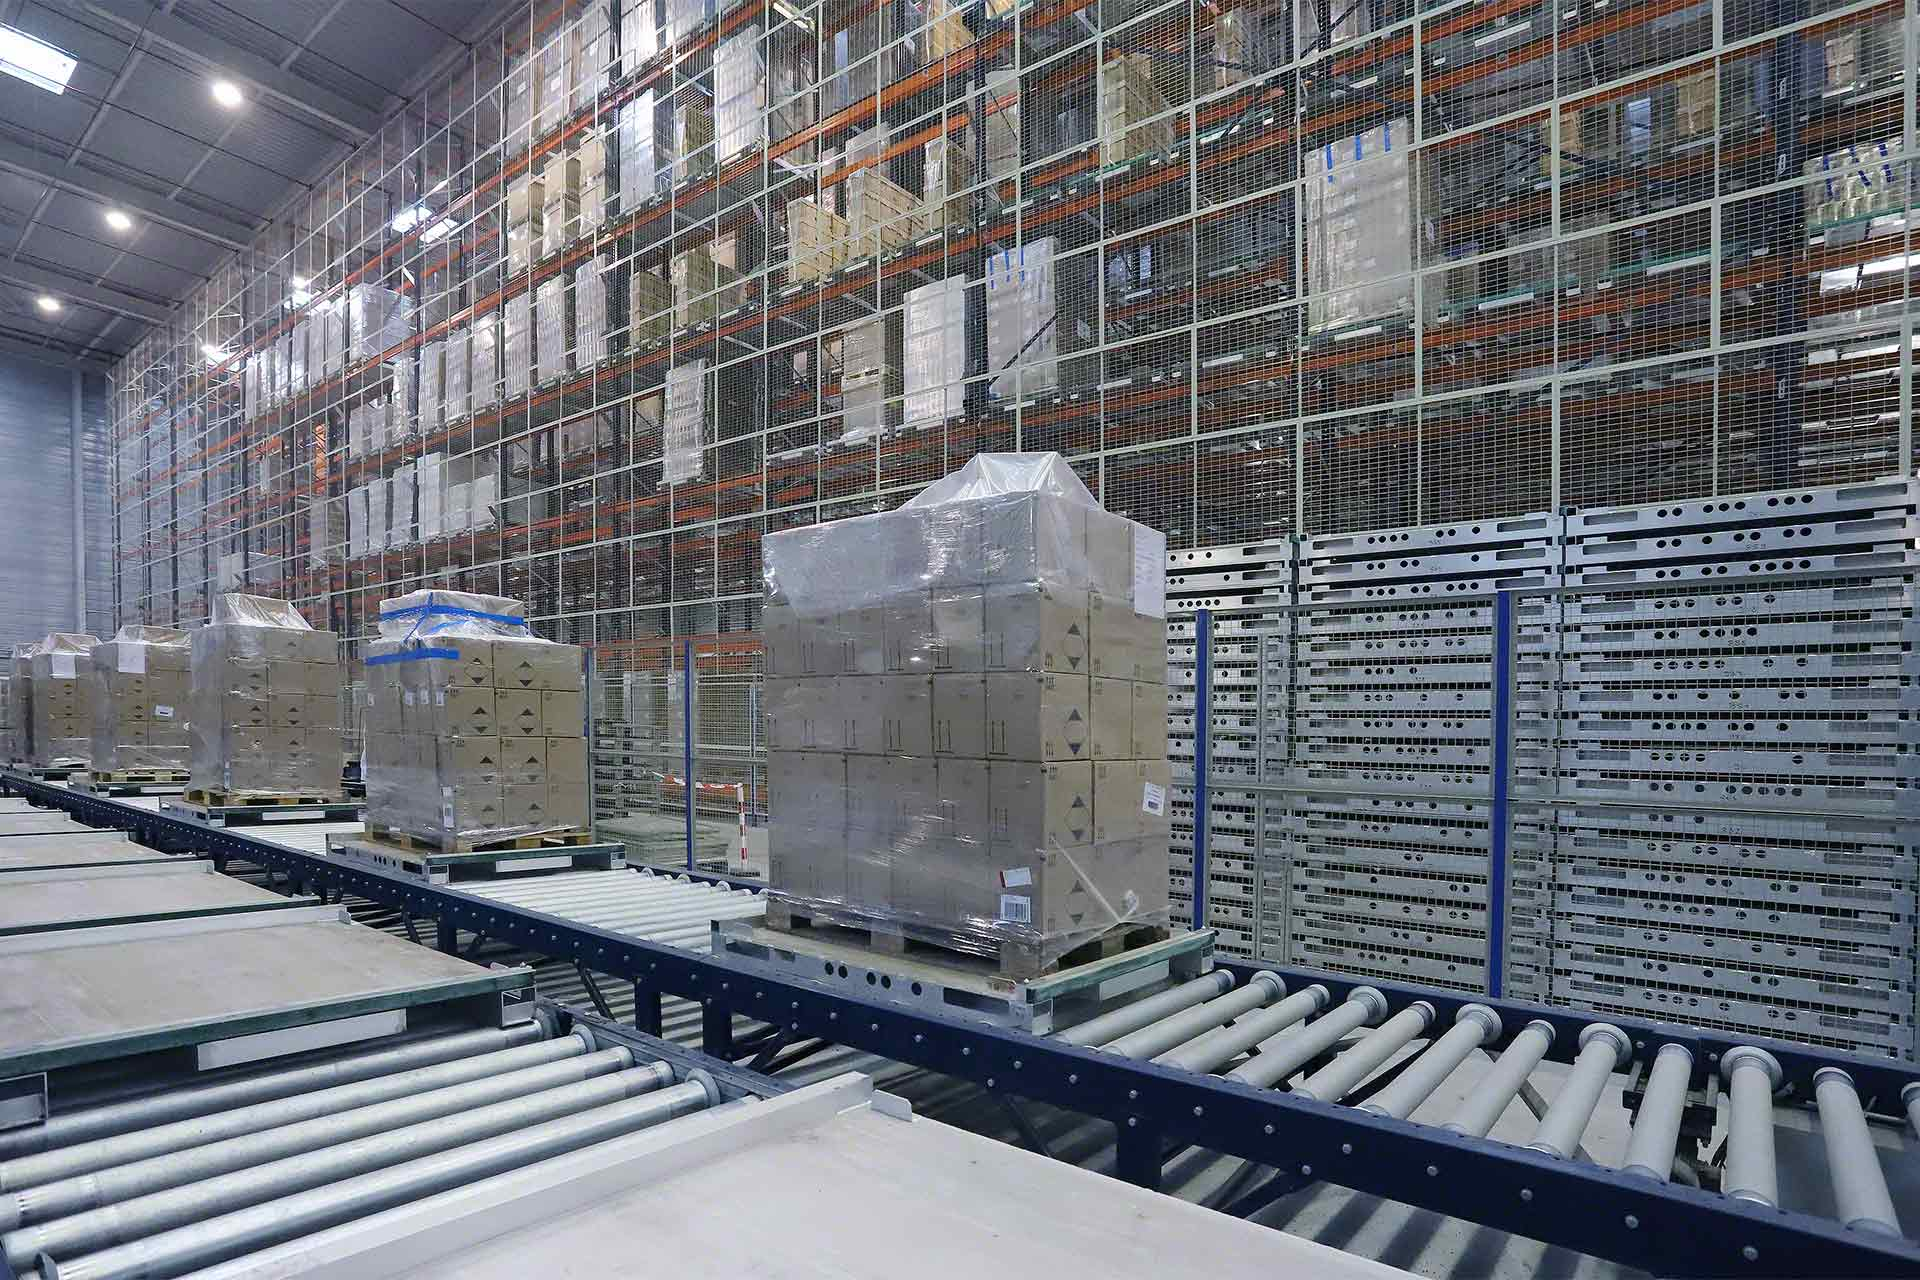 Industrial conveyors for logistics warehouses